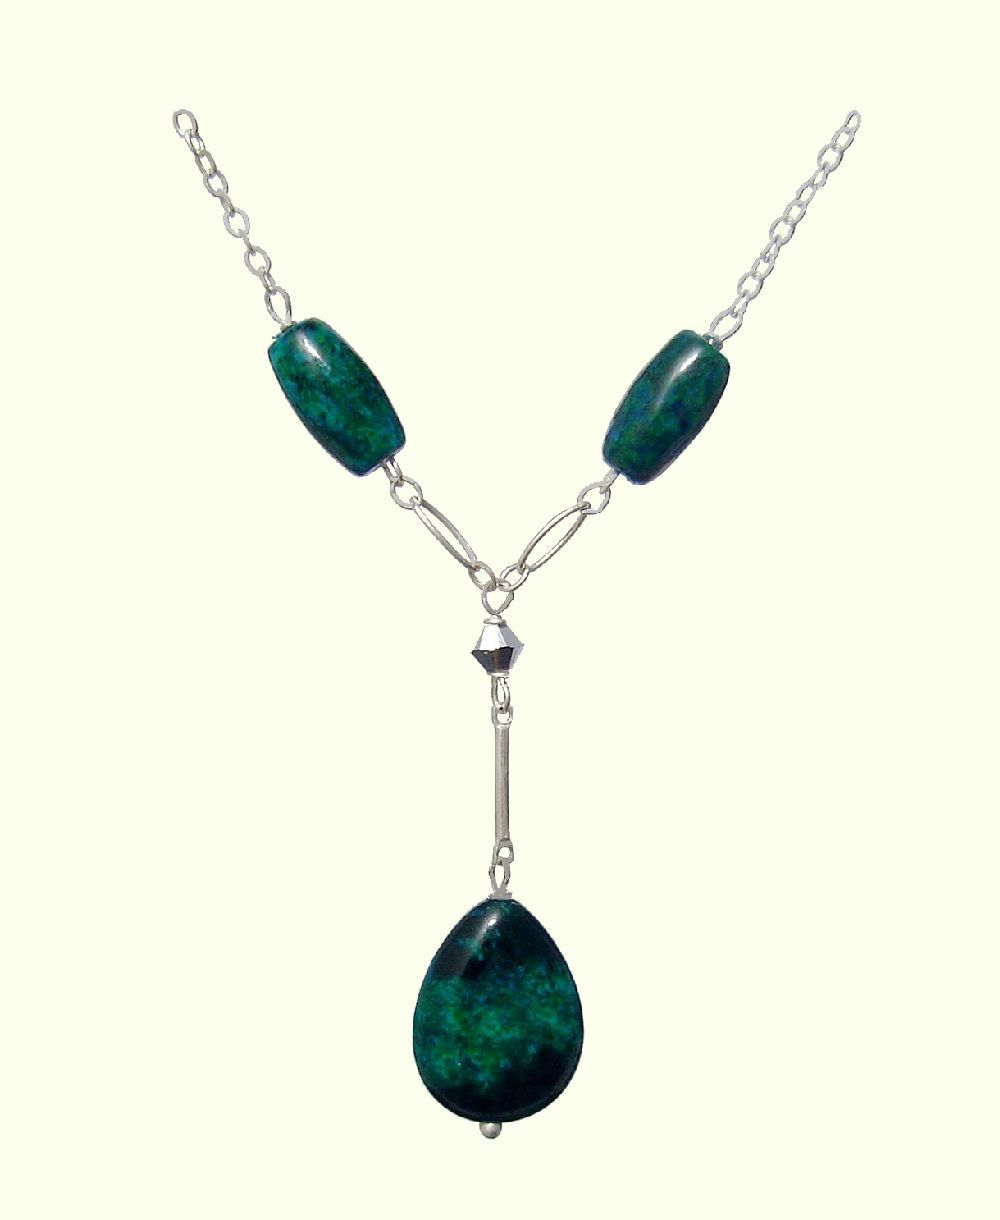 Chrysocolla blue green teardrop 925 sterling silver necklace chrysocolla blue green teardrop 925 sterling silver necklace handmade natural stones jewelry aloadofball Image collections